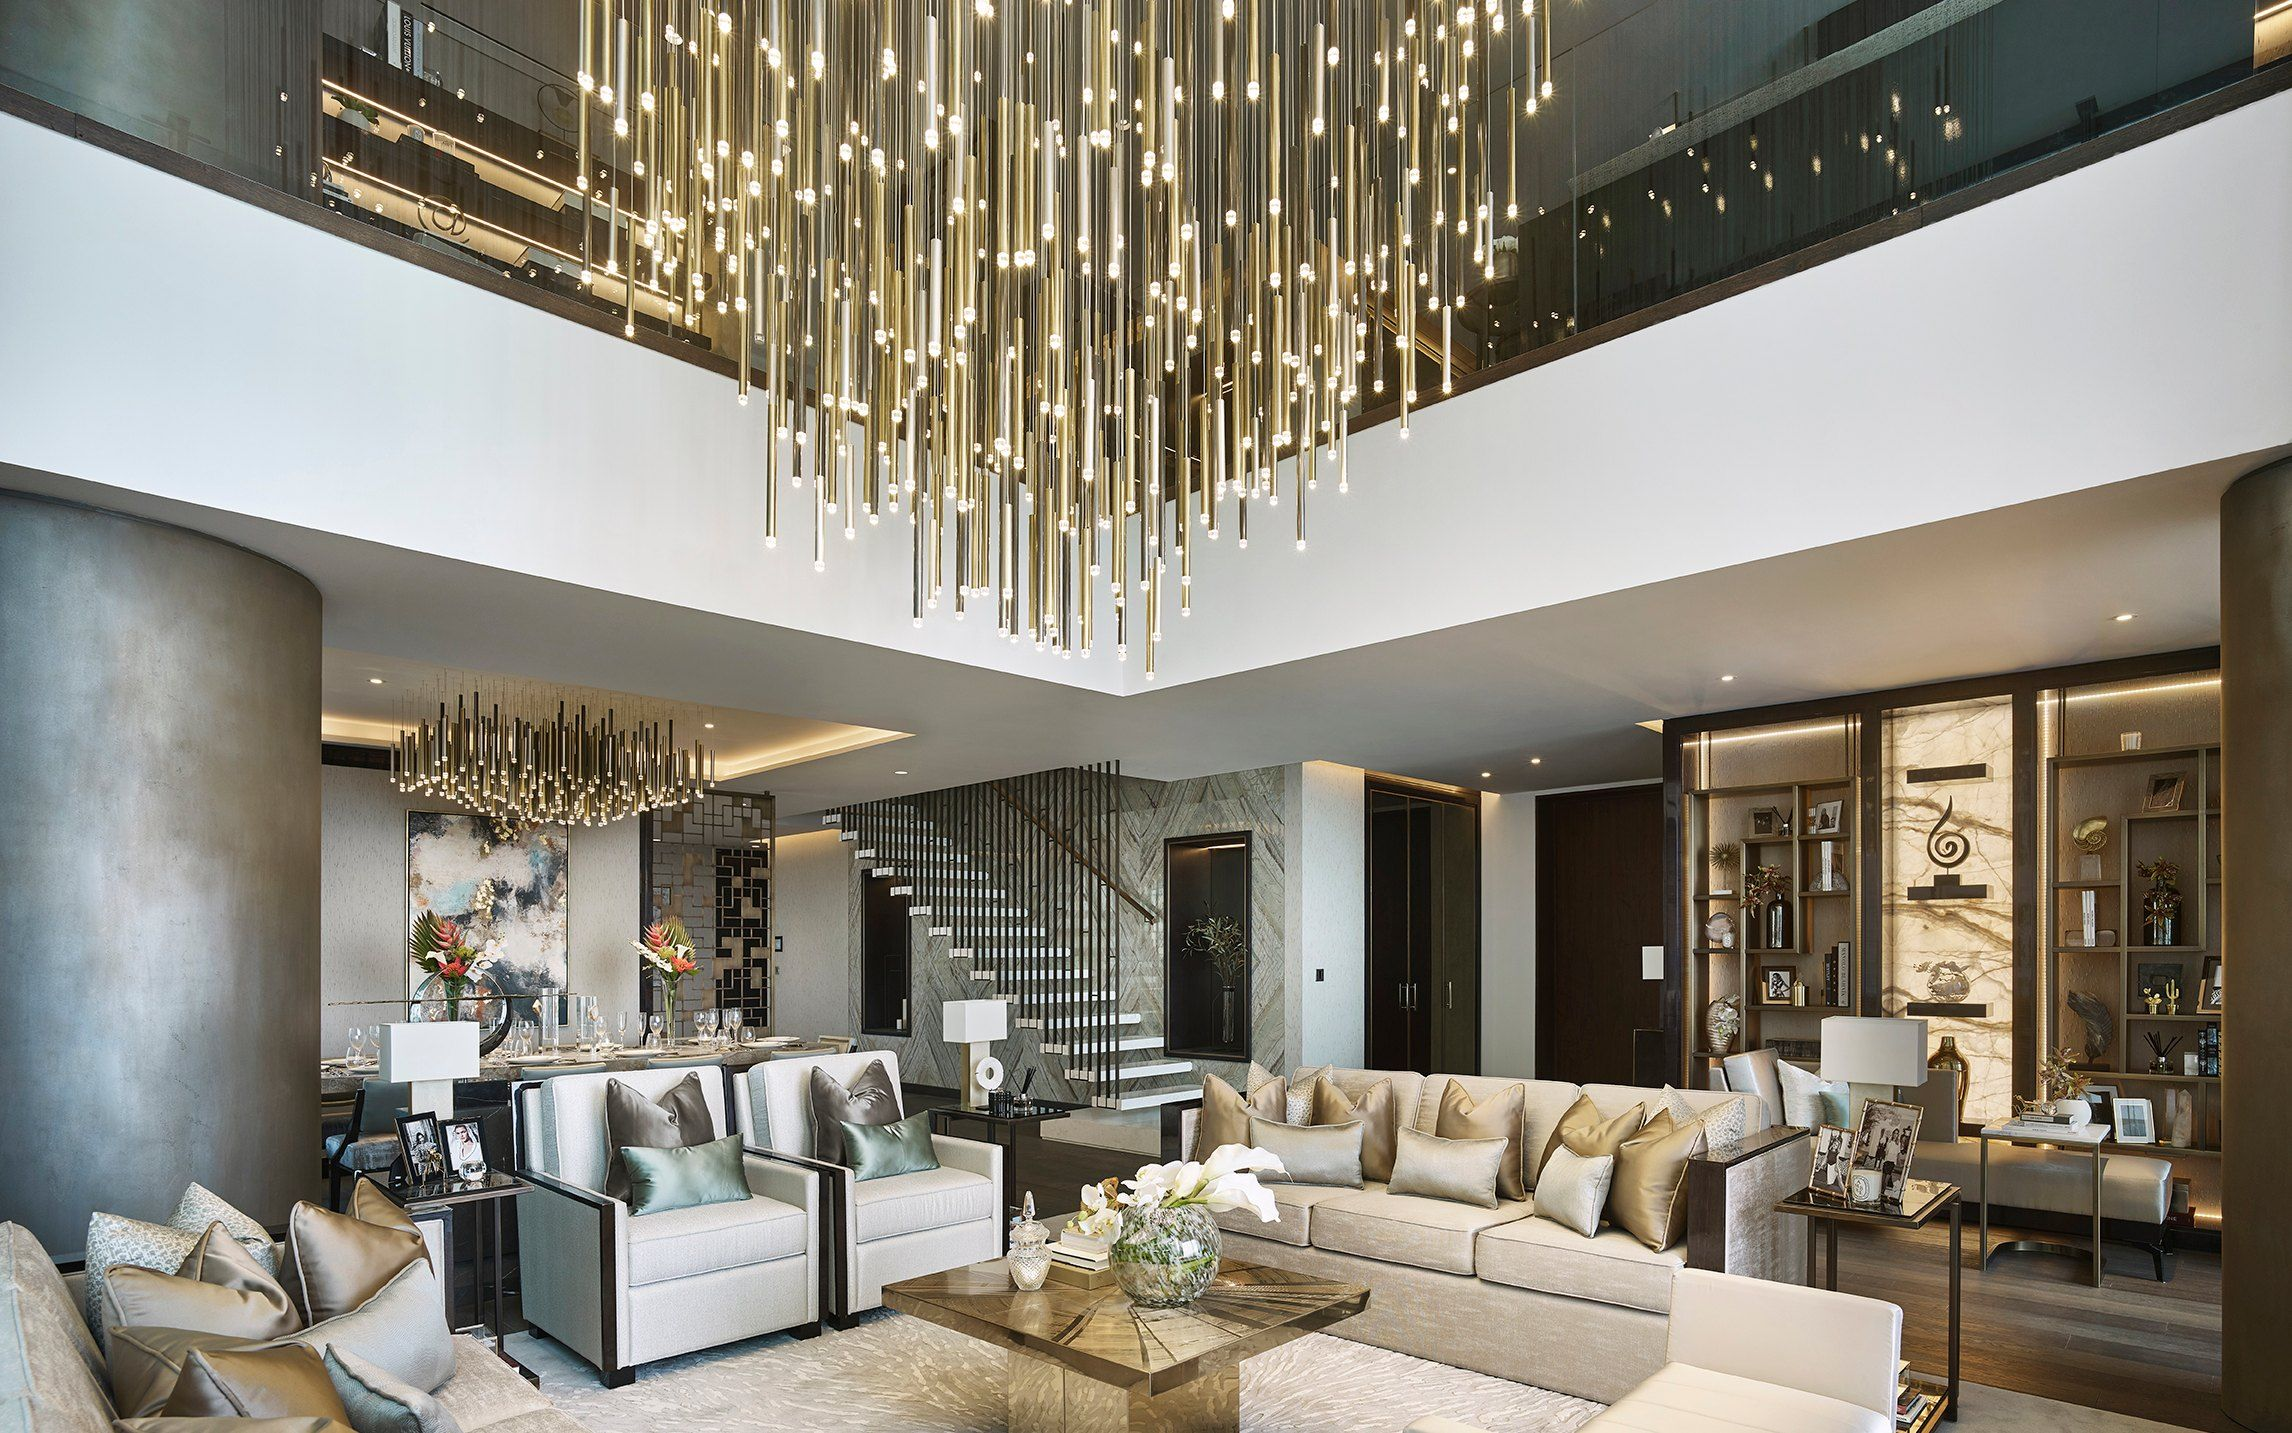 7 Ways To Make A Statement In Your Living Room Hospital Interior Design Interior Design Student Interior Design Firms E design living room